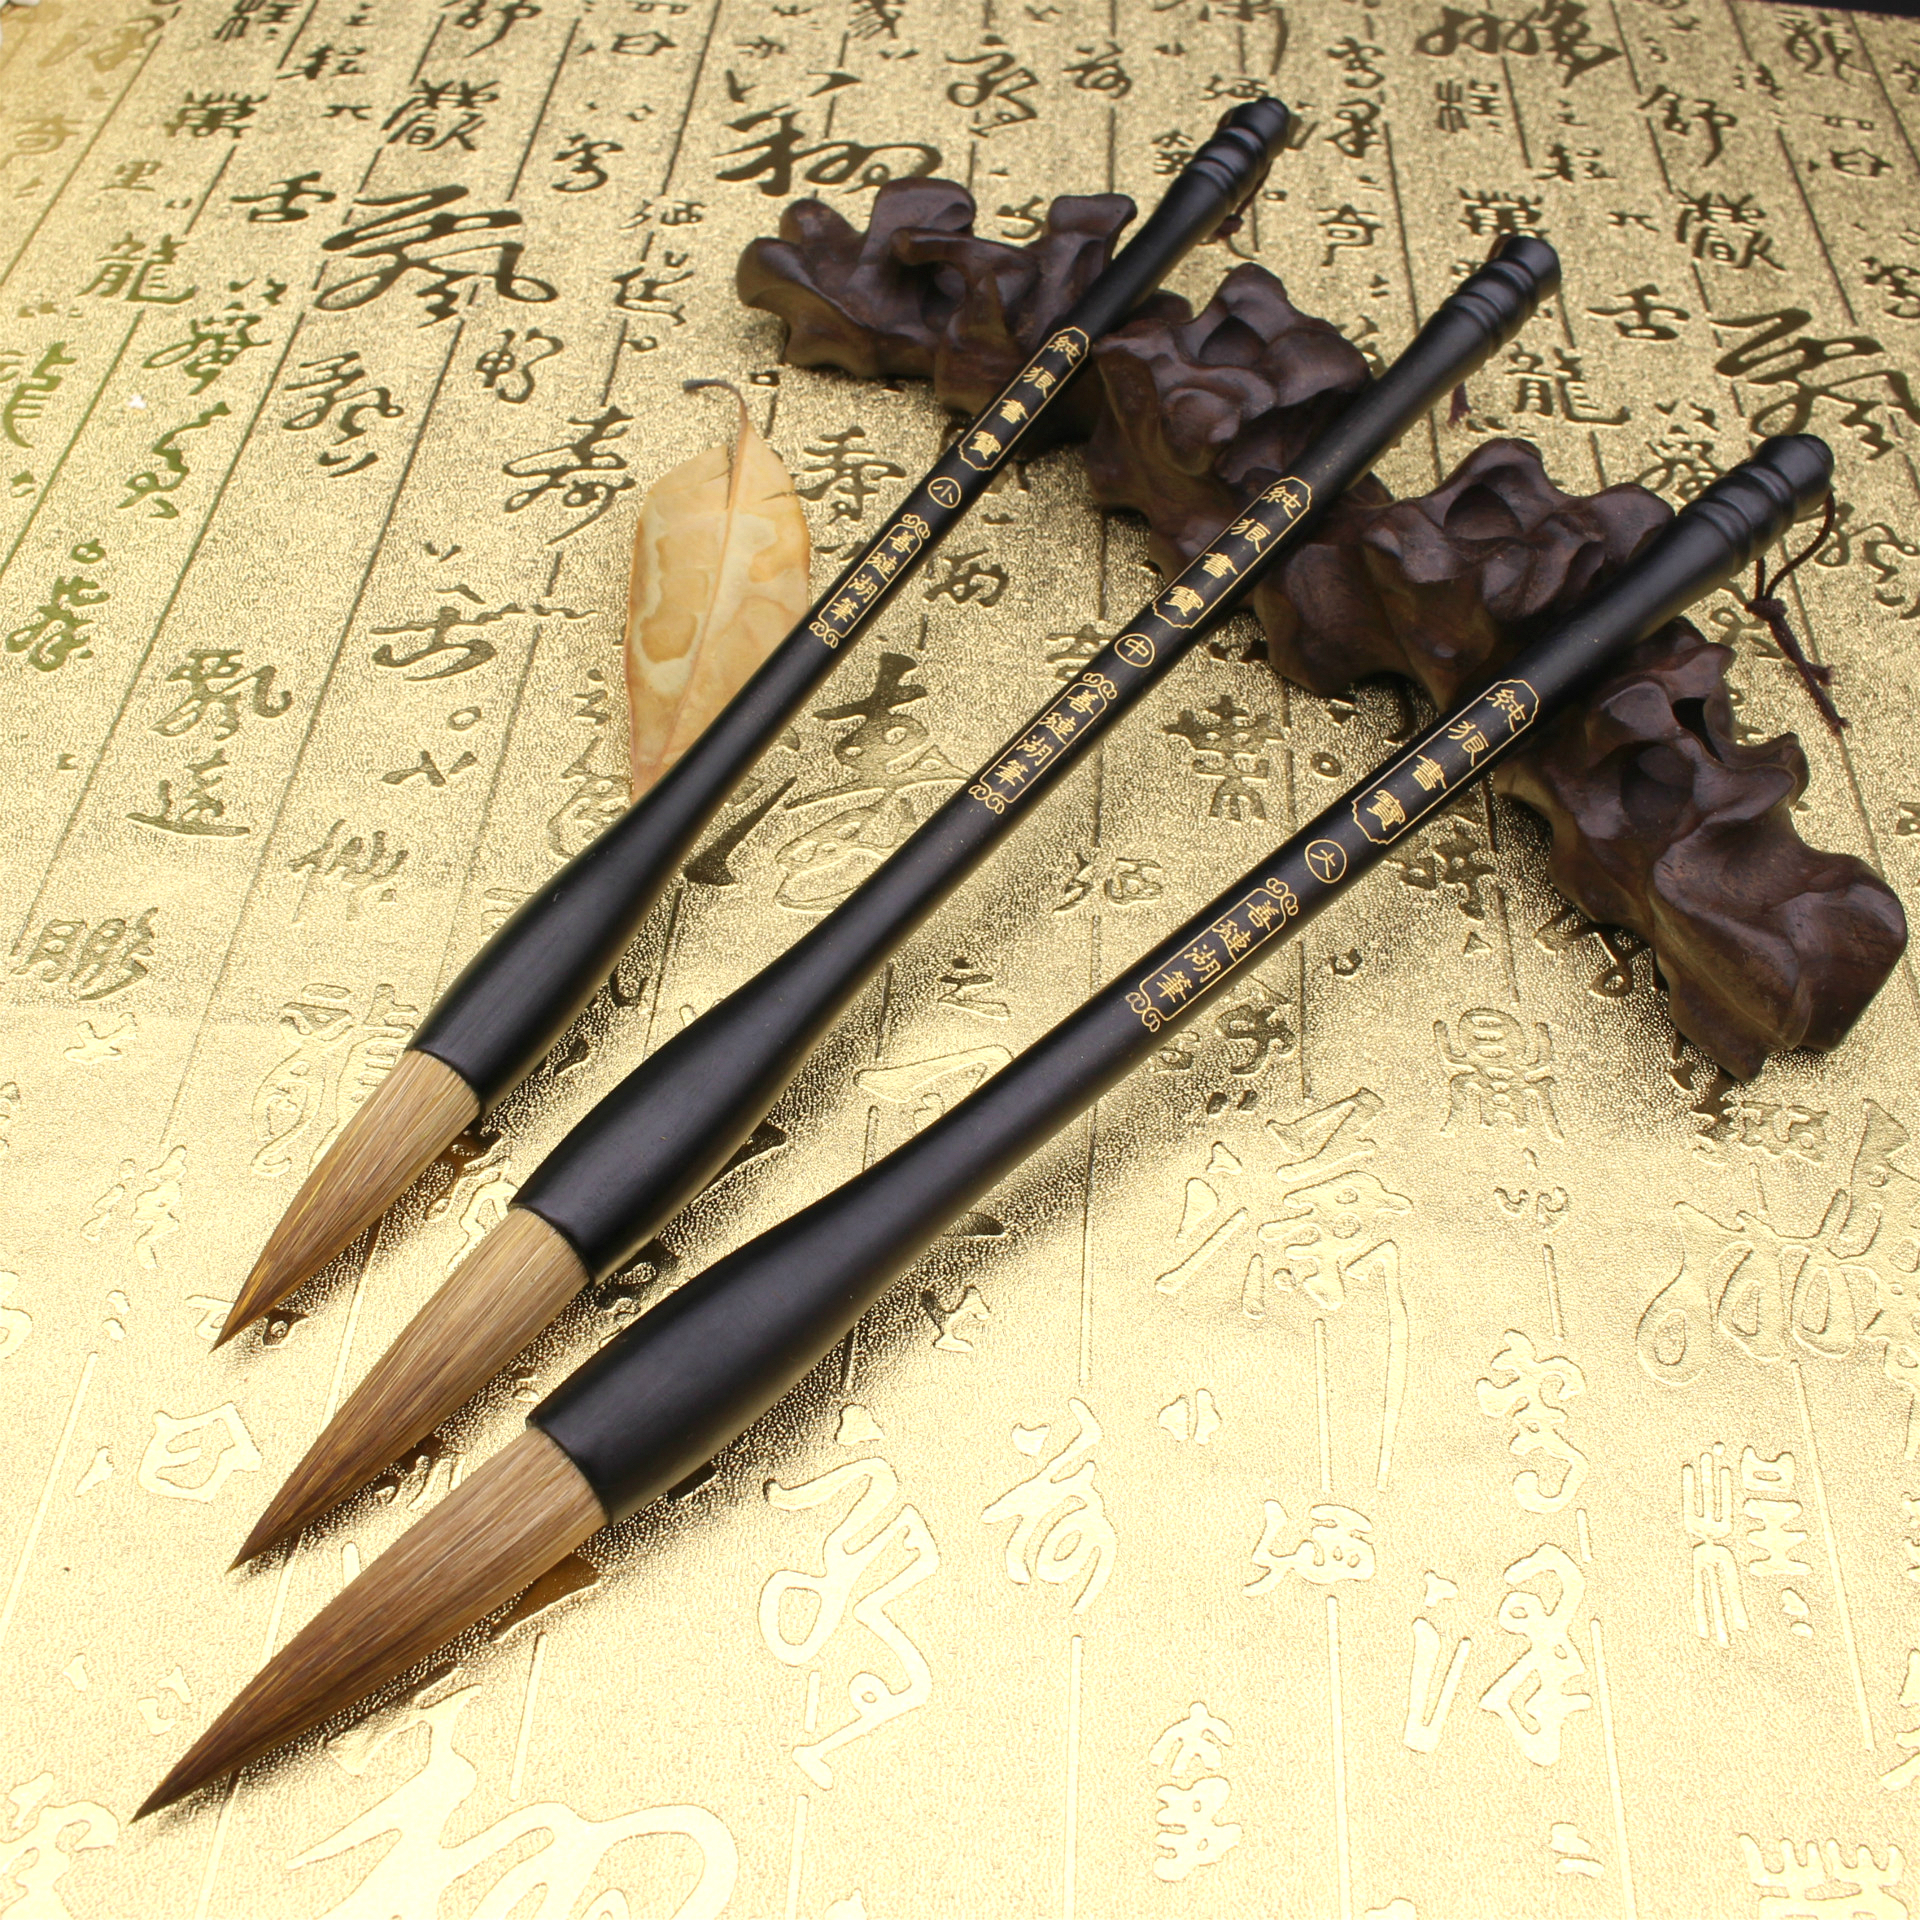 цены Large Middle Small Regular Script Painting Chinese Traditional Calligraphy Brush Set Pure Weasel Hair Pen Writing Brushes 3pcs